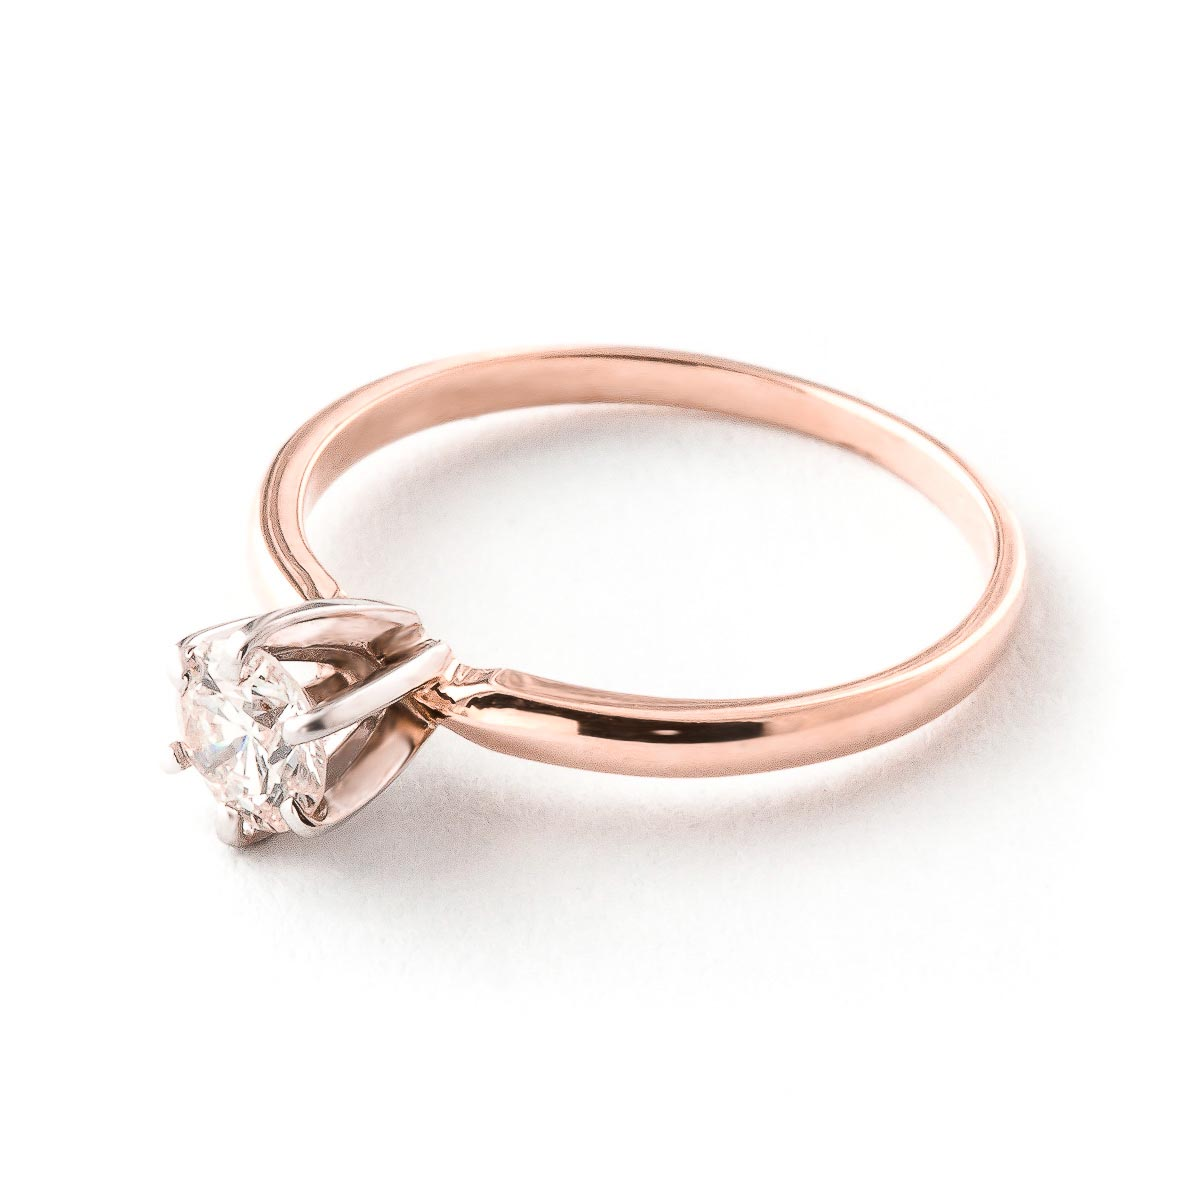 Round Brilliant Cut Diamond Solitaire Ring in 9ct Rose Gold